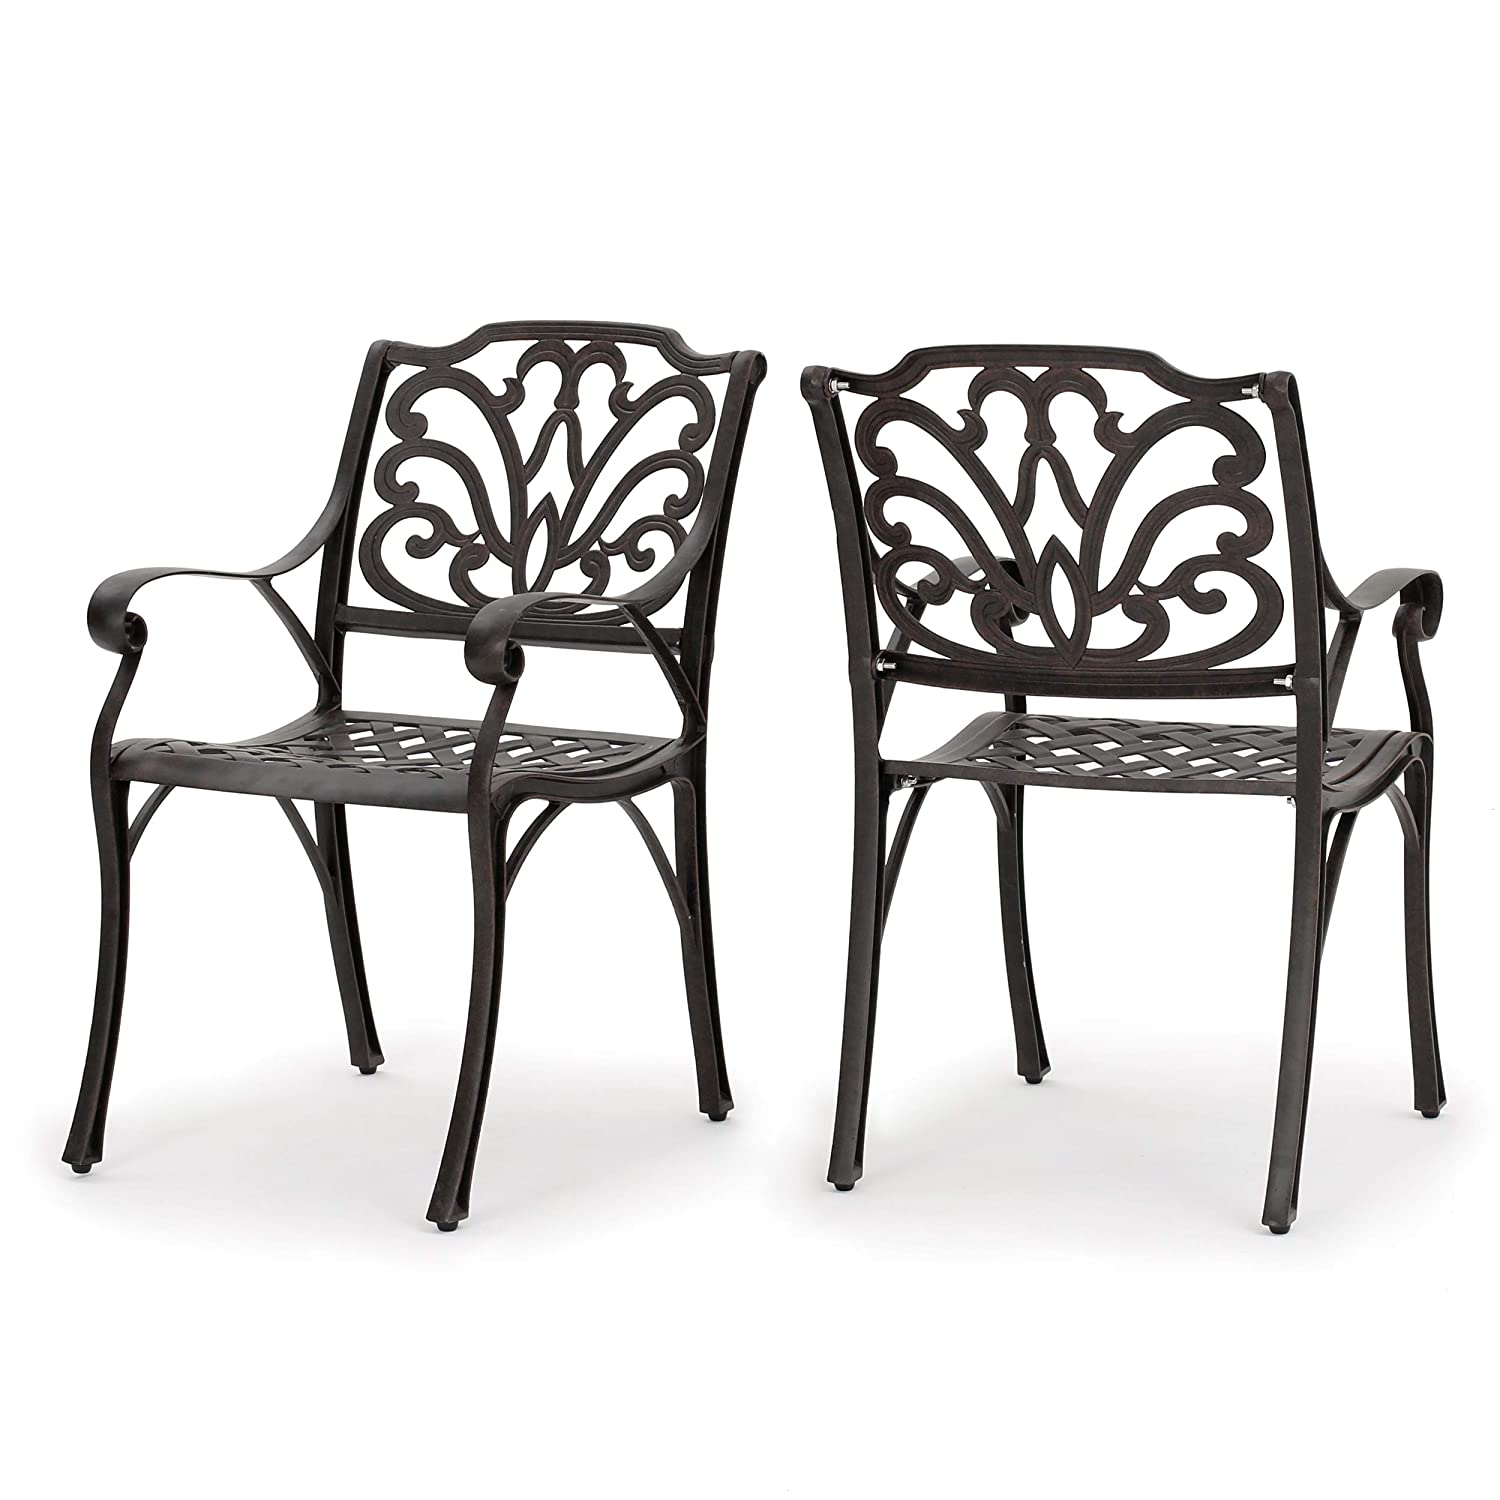 GDF Studio Calandra Cast Aluminum Outdoor Dining Chairs Set of 2 Perfect for Patio in Bronze